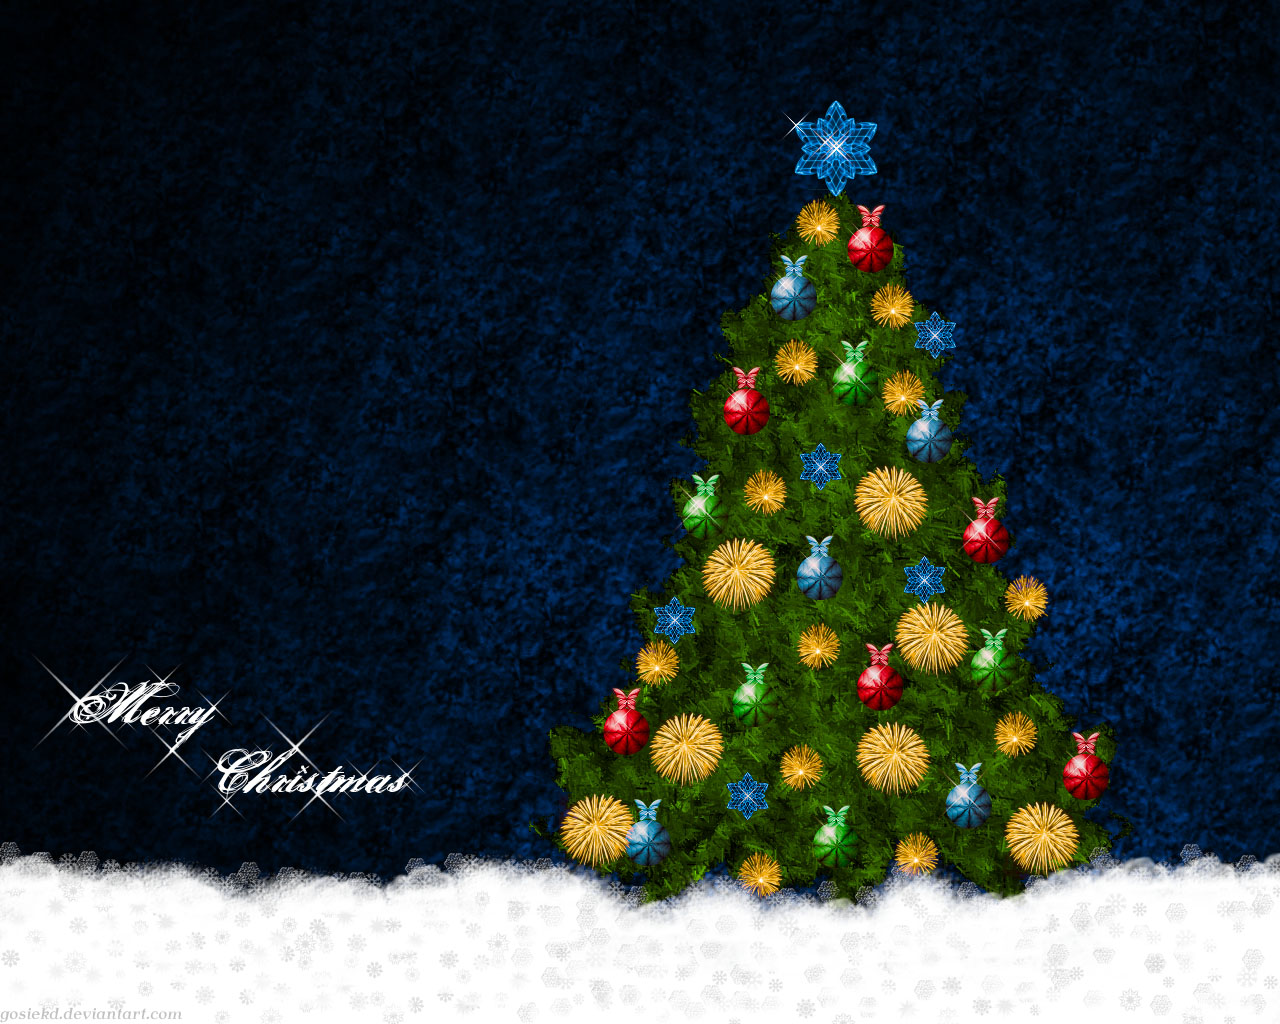 40 Christmas Wallpapers HD Quality 2012 Collection 1280x1024